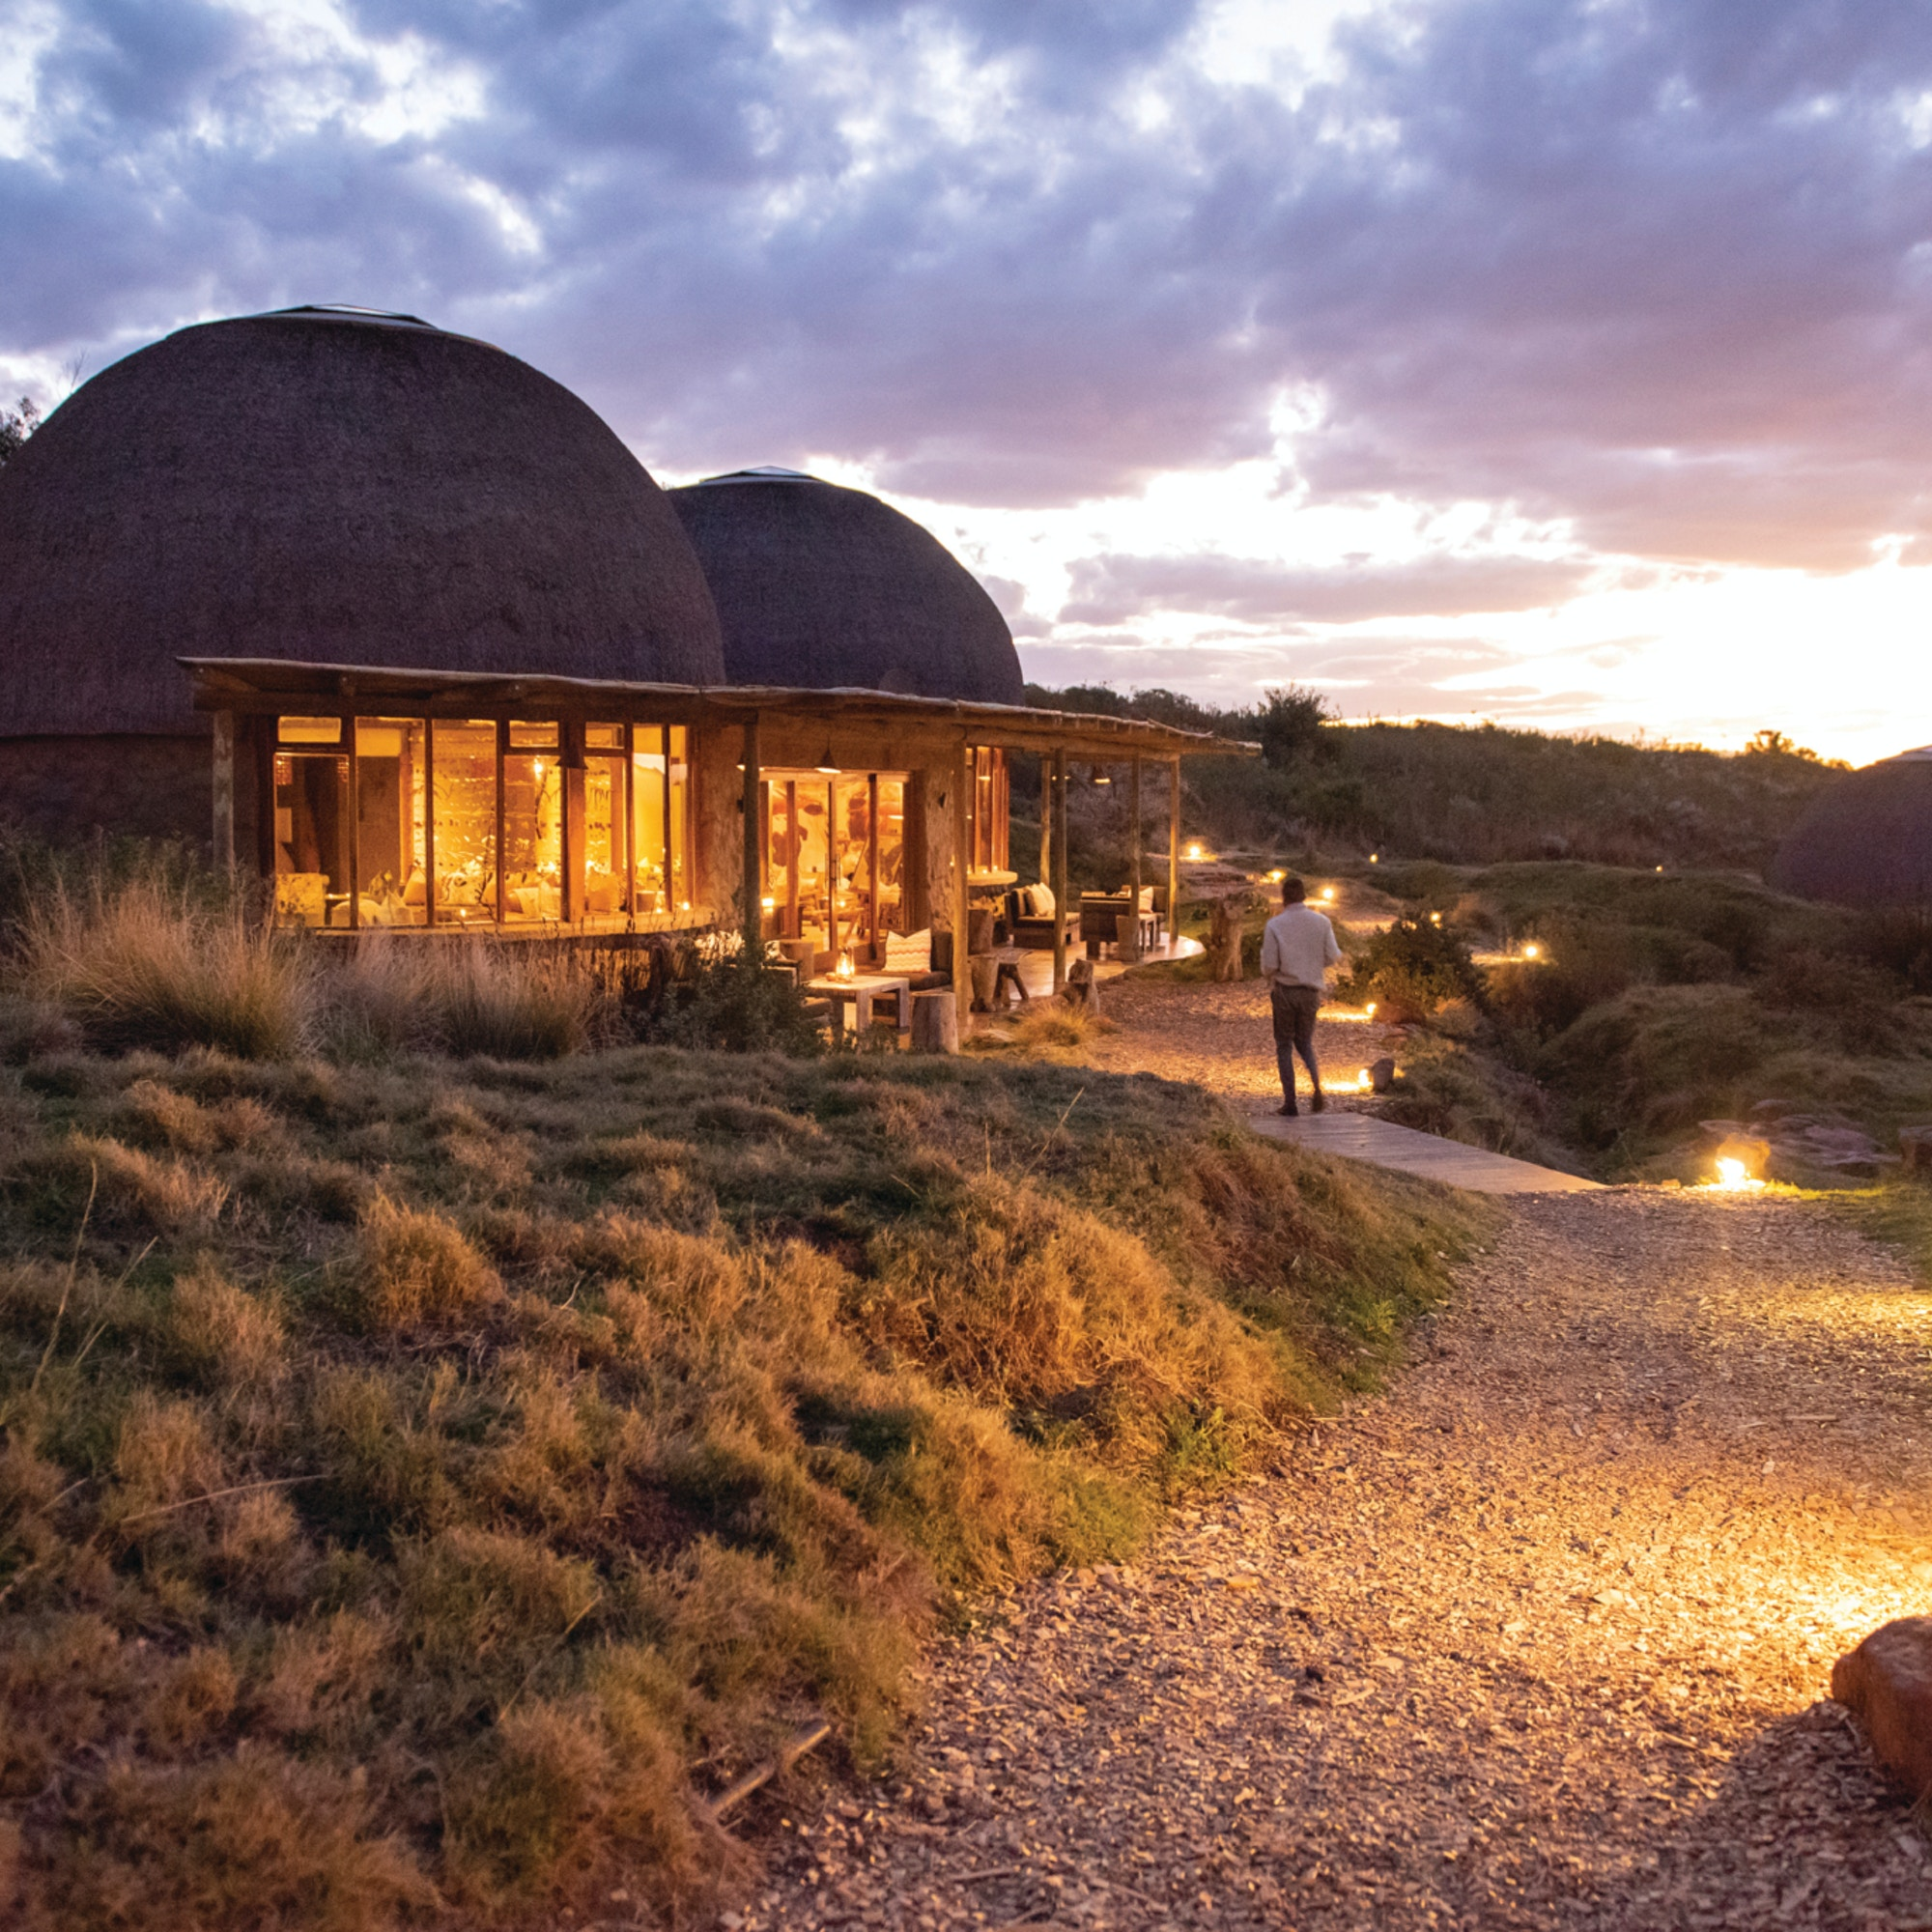 Gondwana Kwena Lodge